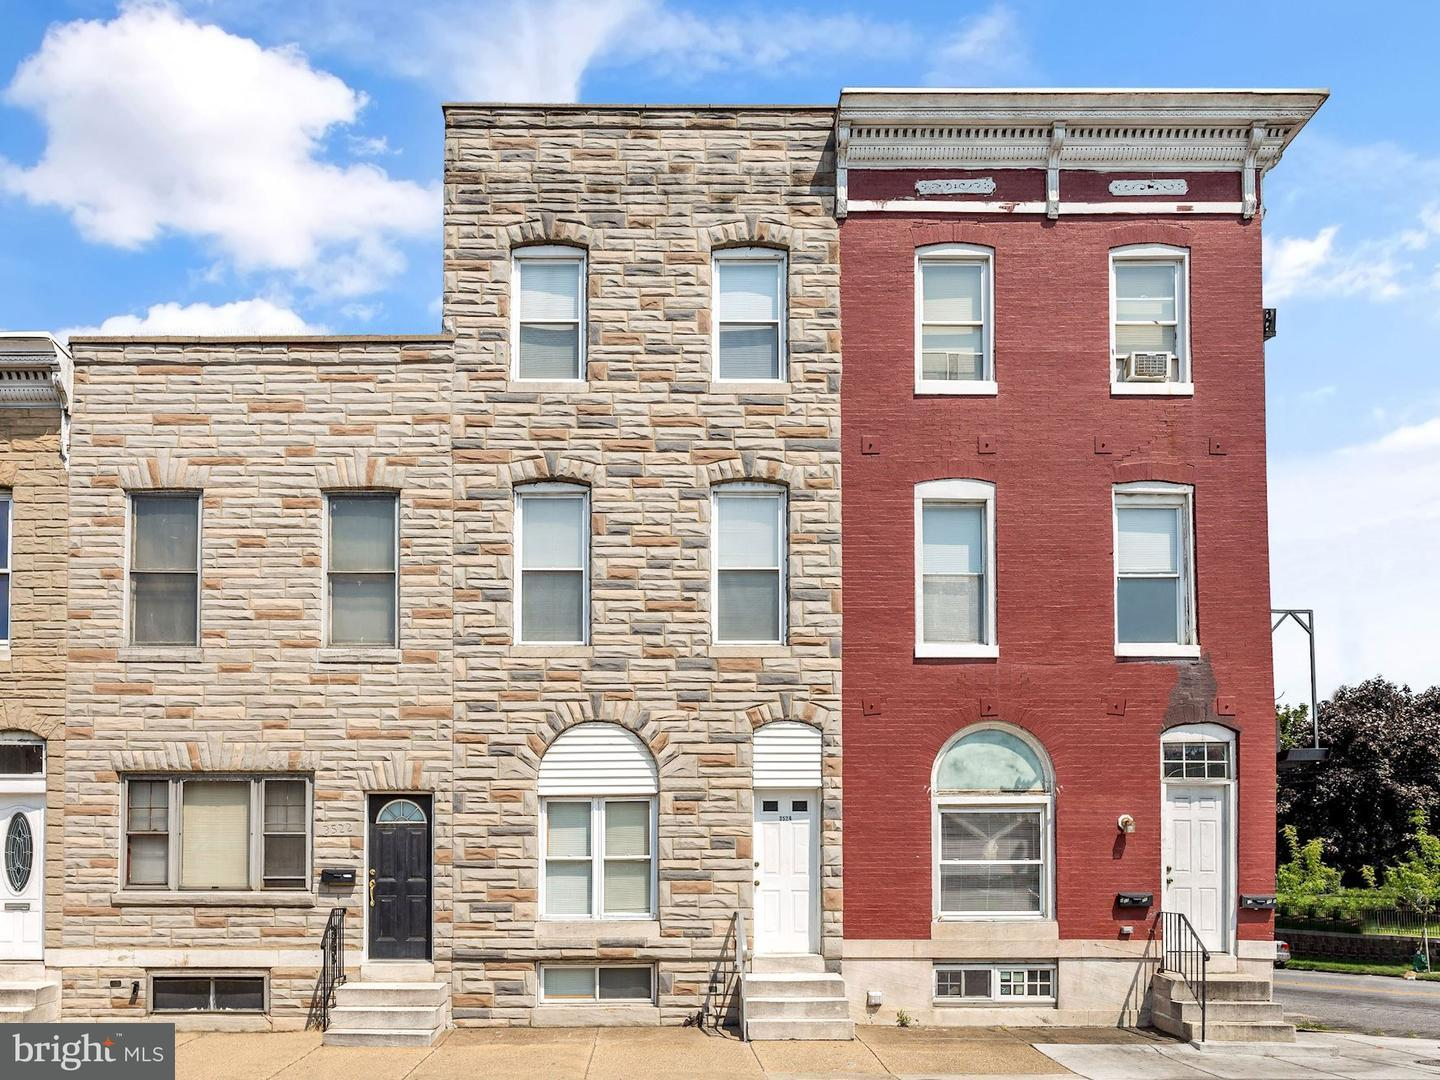 3524 e baltimore st baltimore md mls 1000046859 for Homes for sale in baltimore